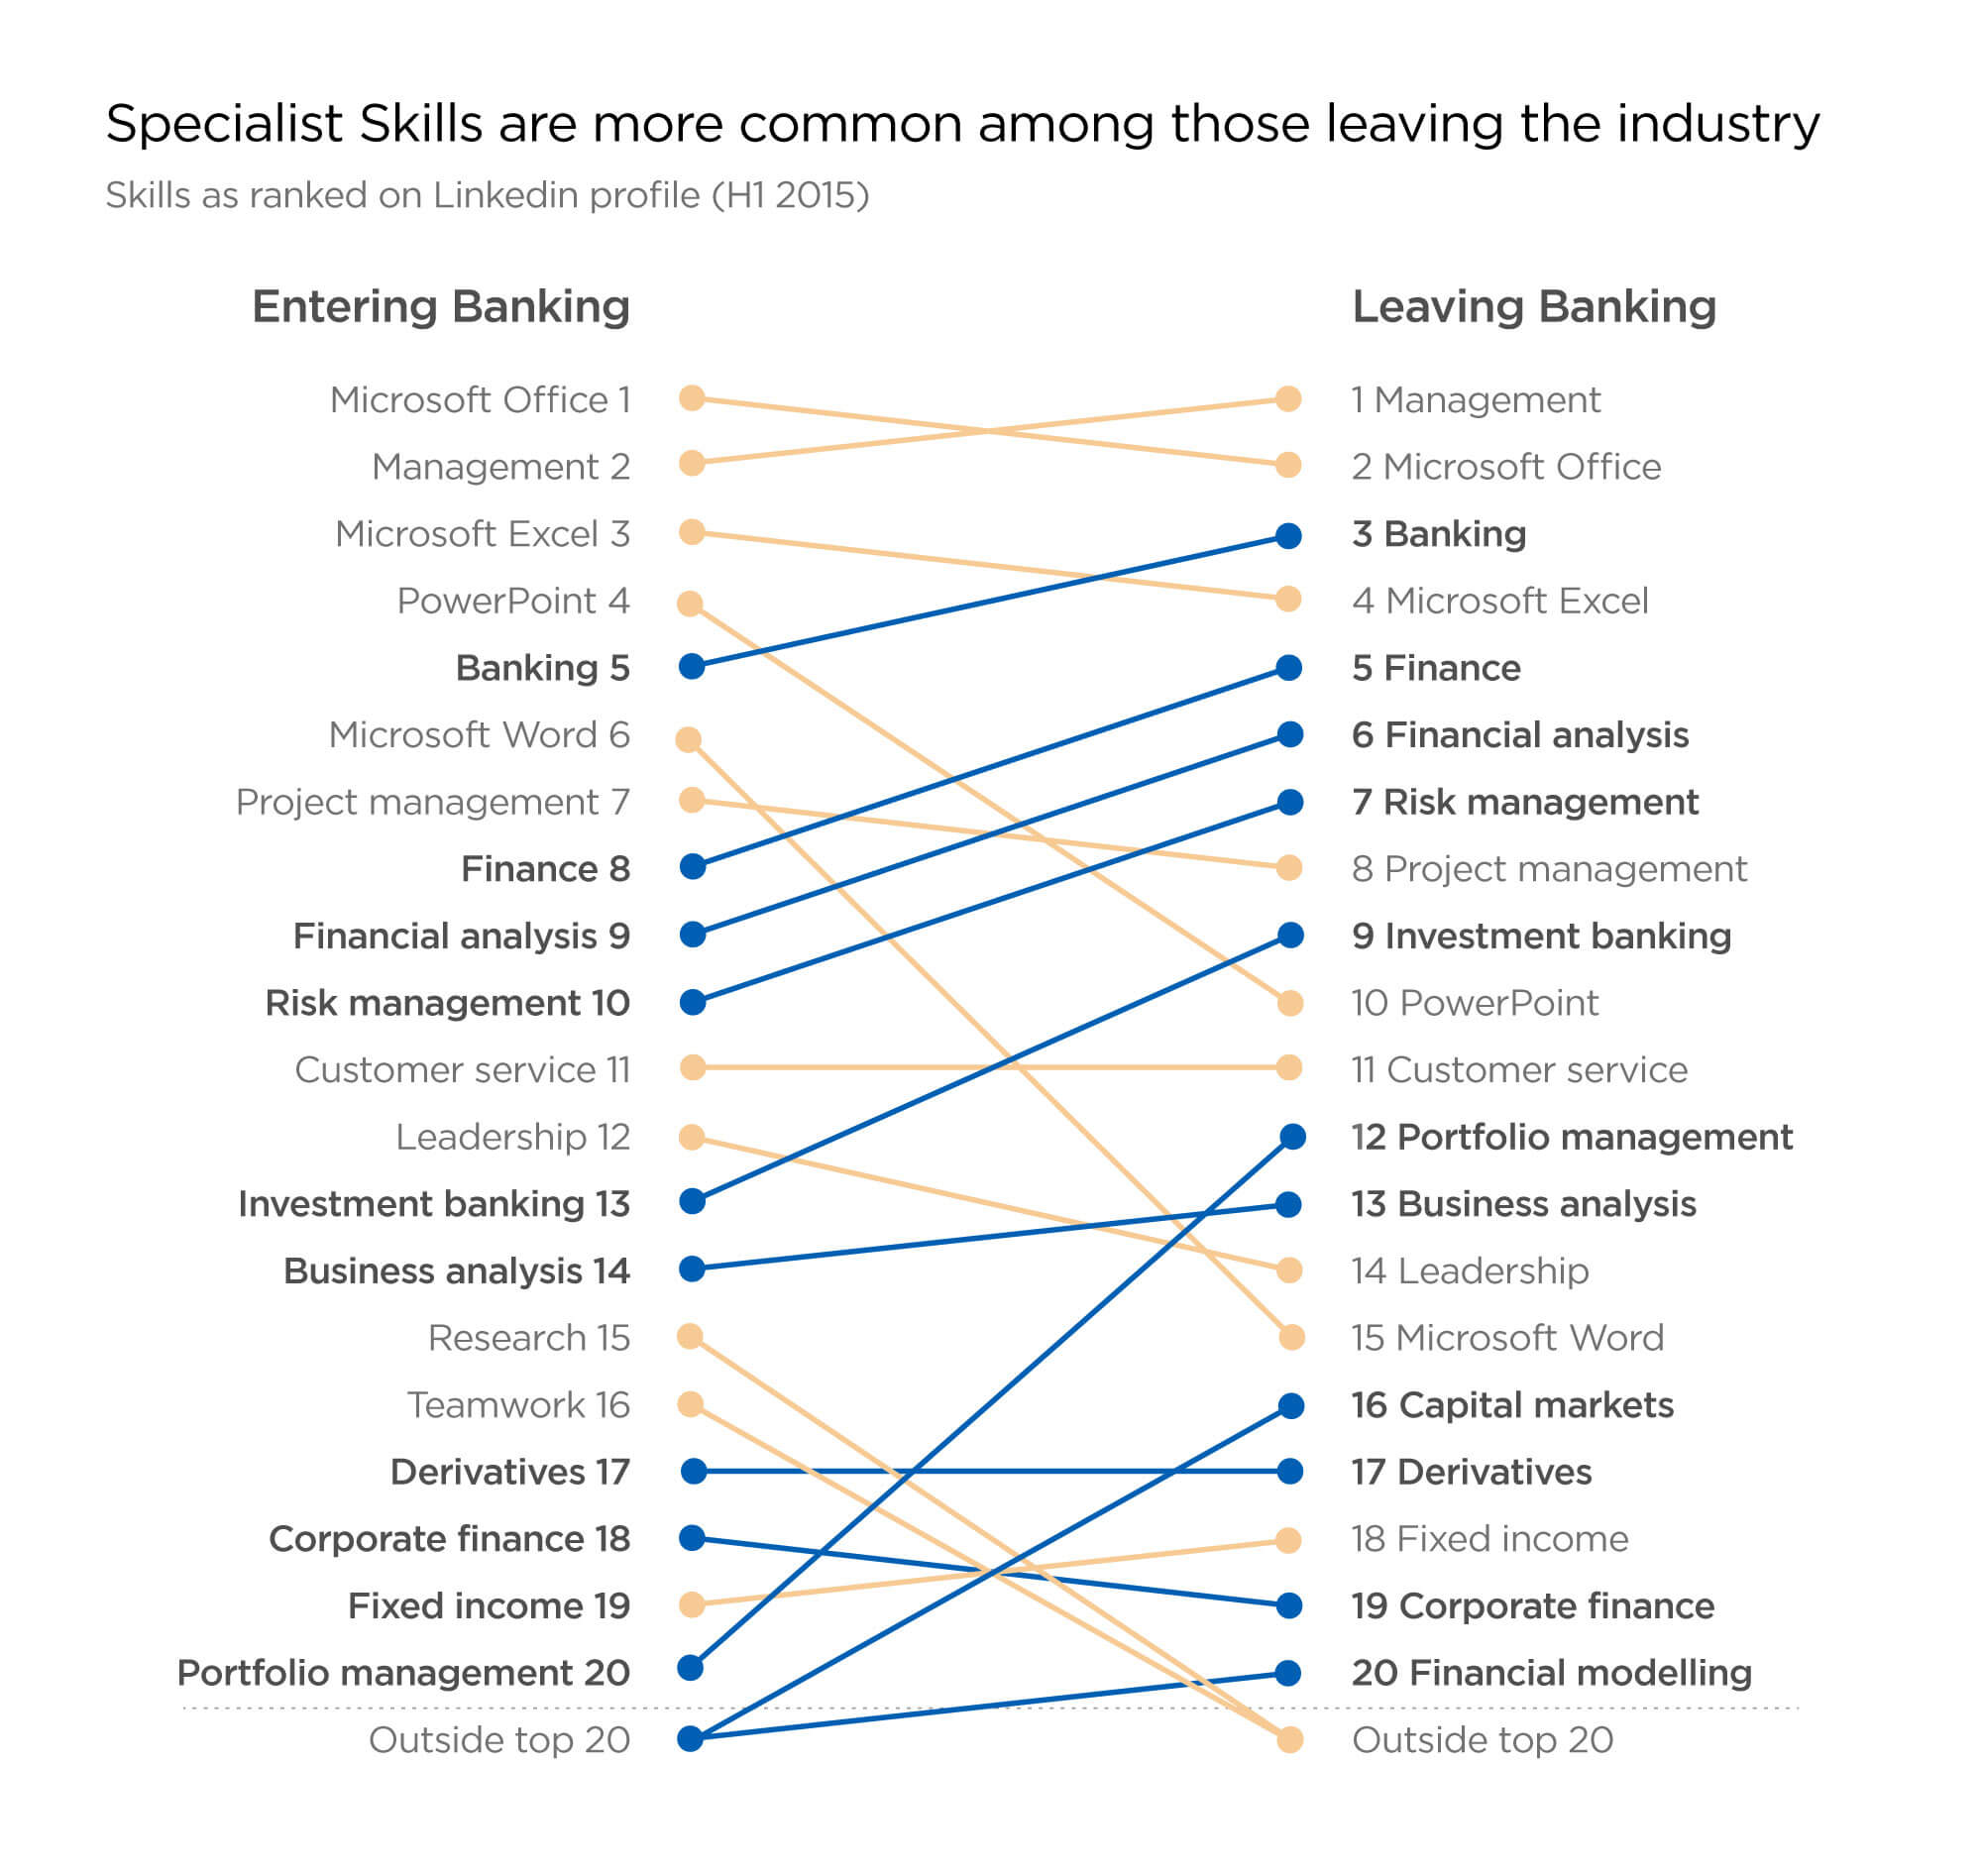 Skills entering and leaving investment banking